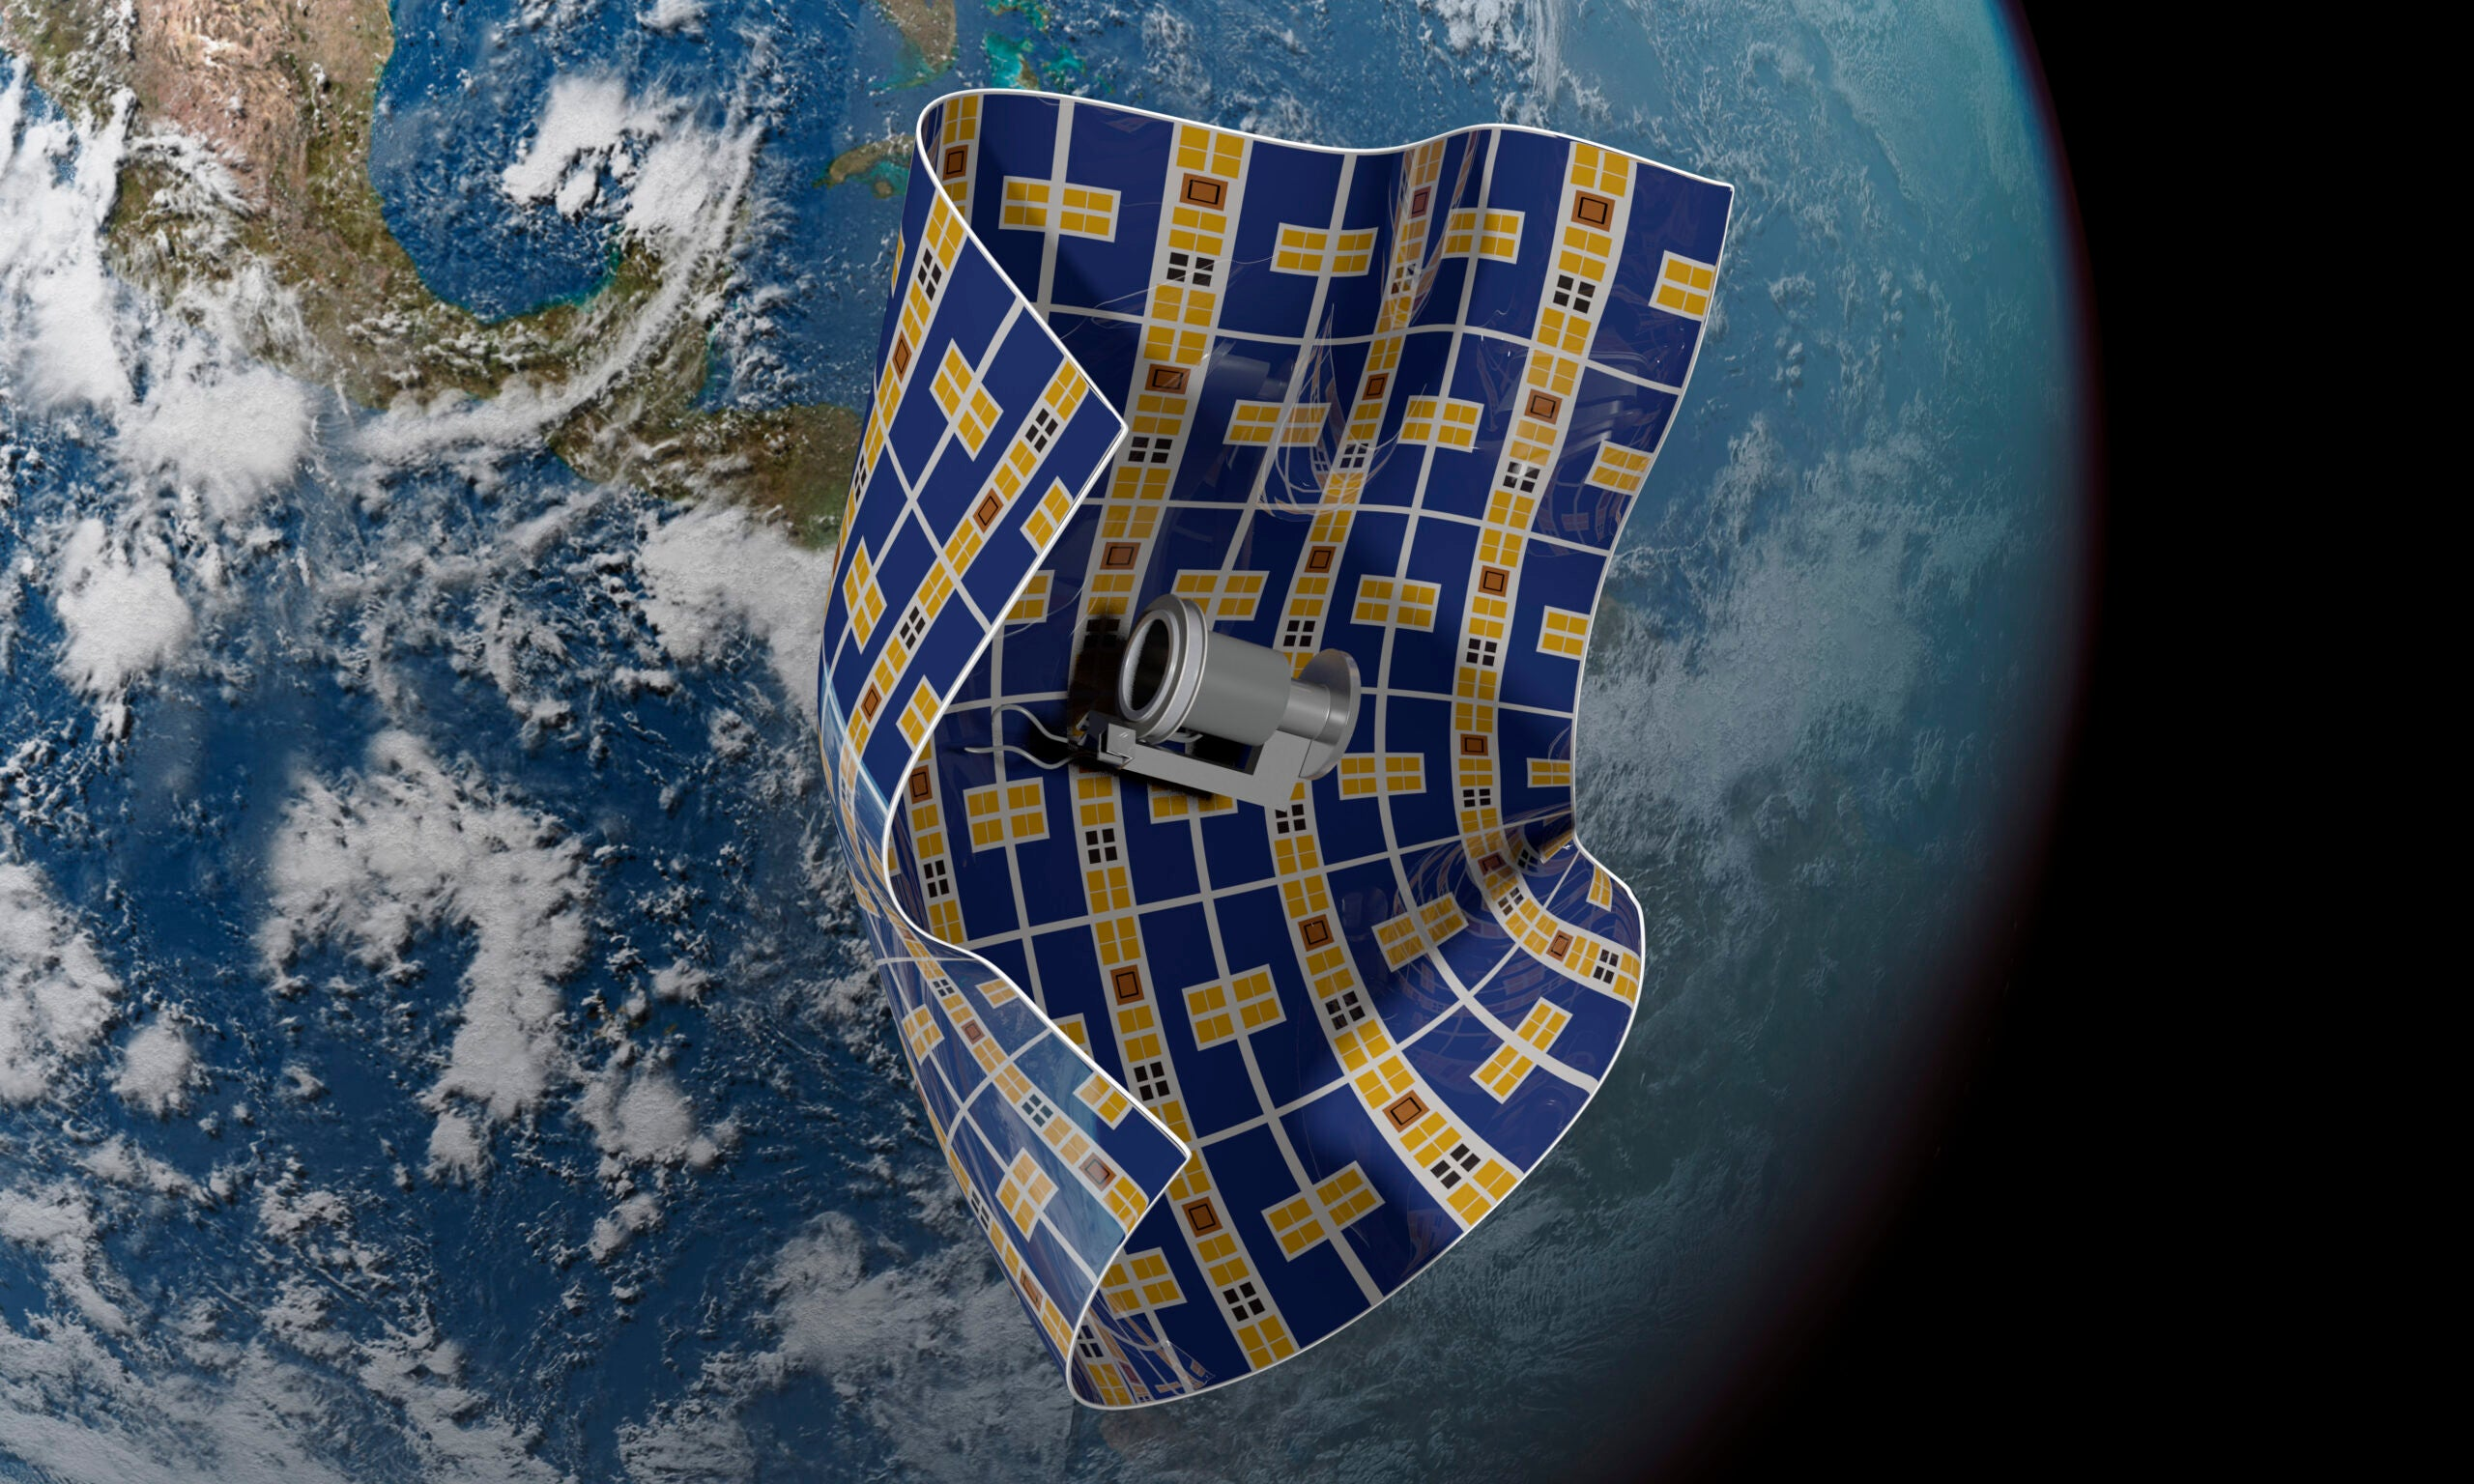 This spacecraft is thinner than a human hair and can capture space debris